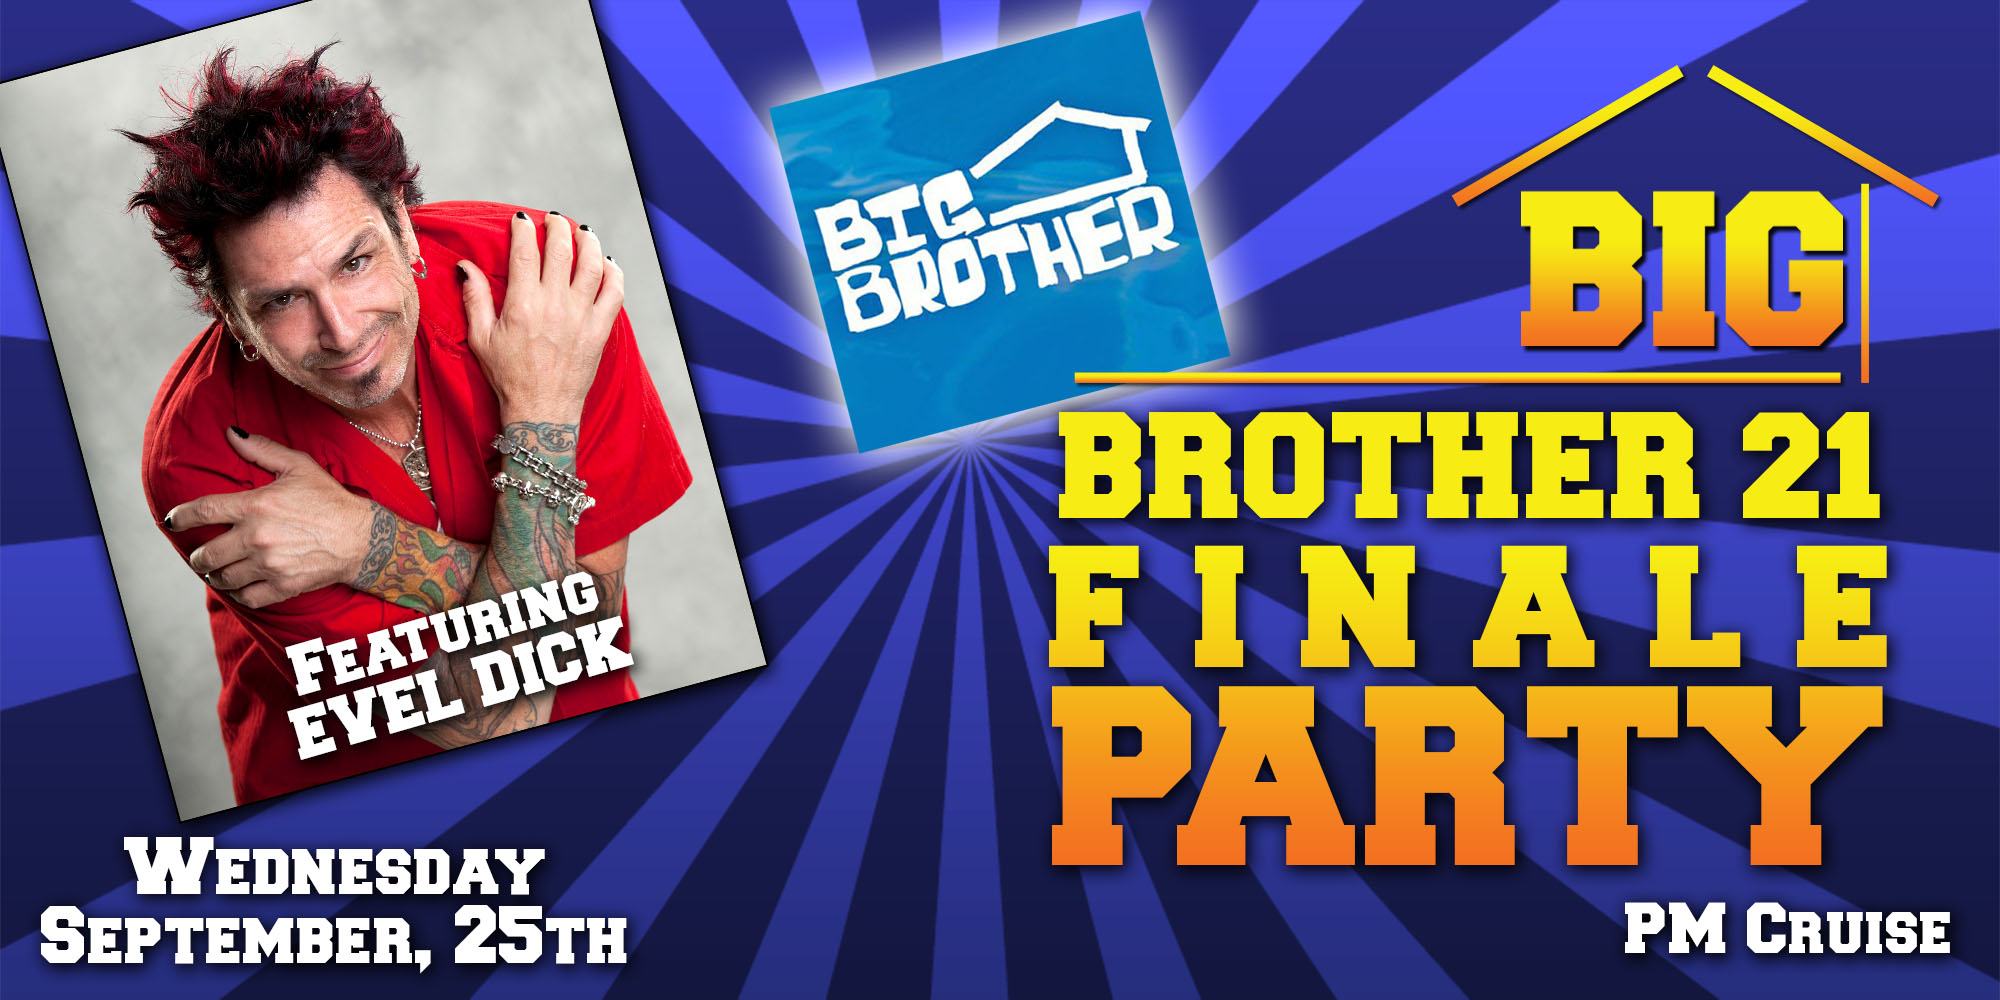 Big Brother Finale Party Featuring Evel Dick | Victory